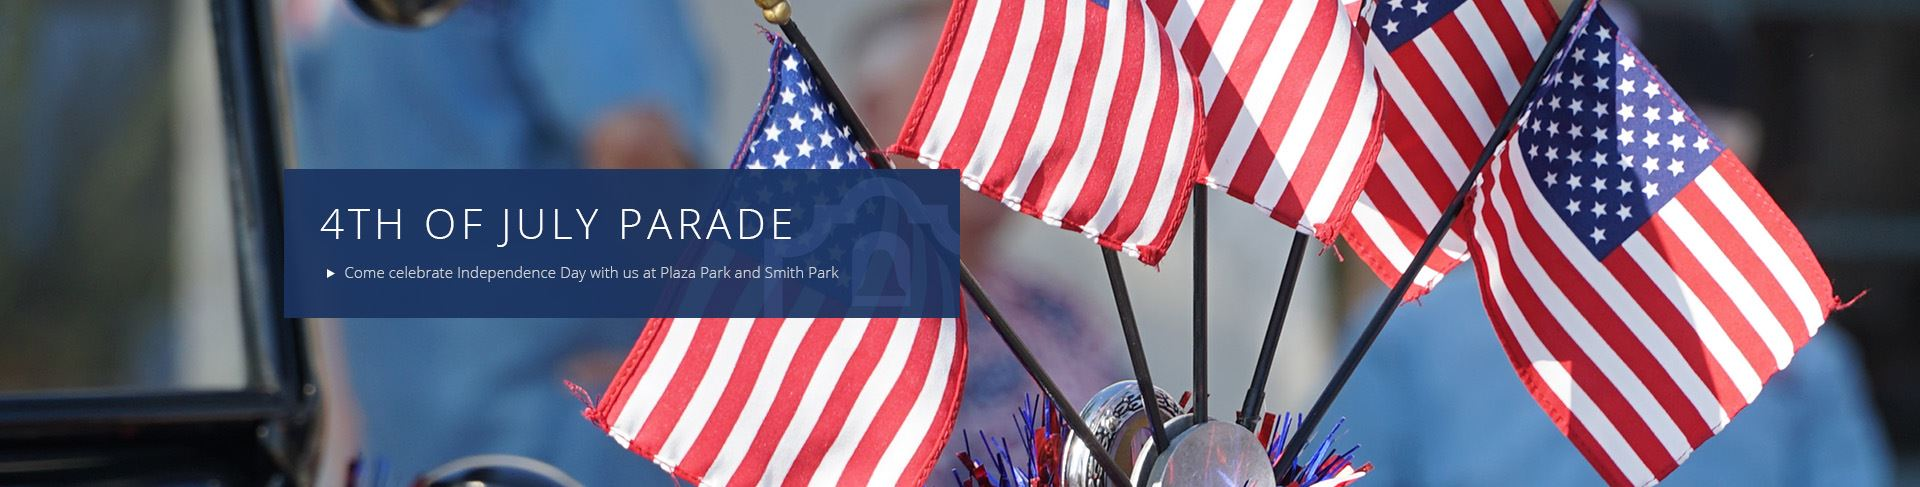 4th of July Parade - Come celebrate Independence Day with us at Plaza Park and Smith Park